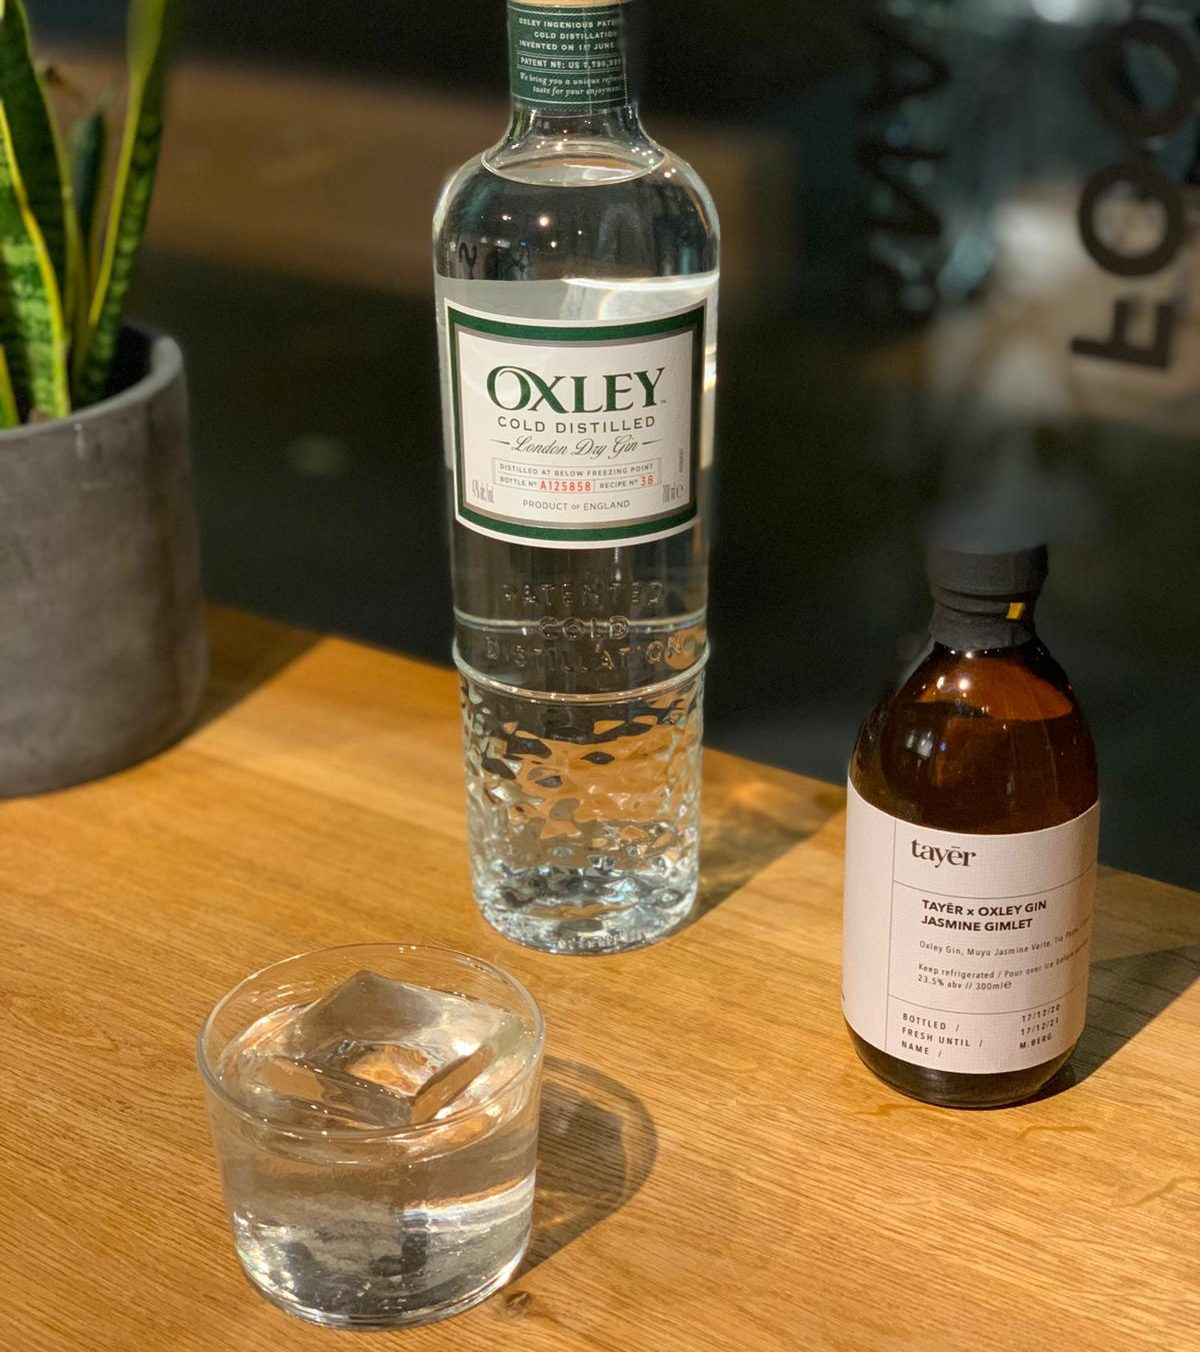 Oxley Gin Tayer cocktail